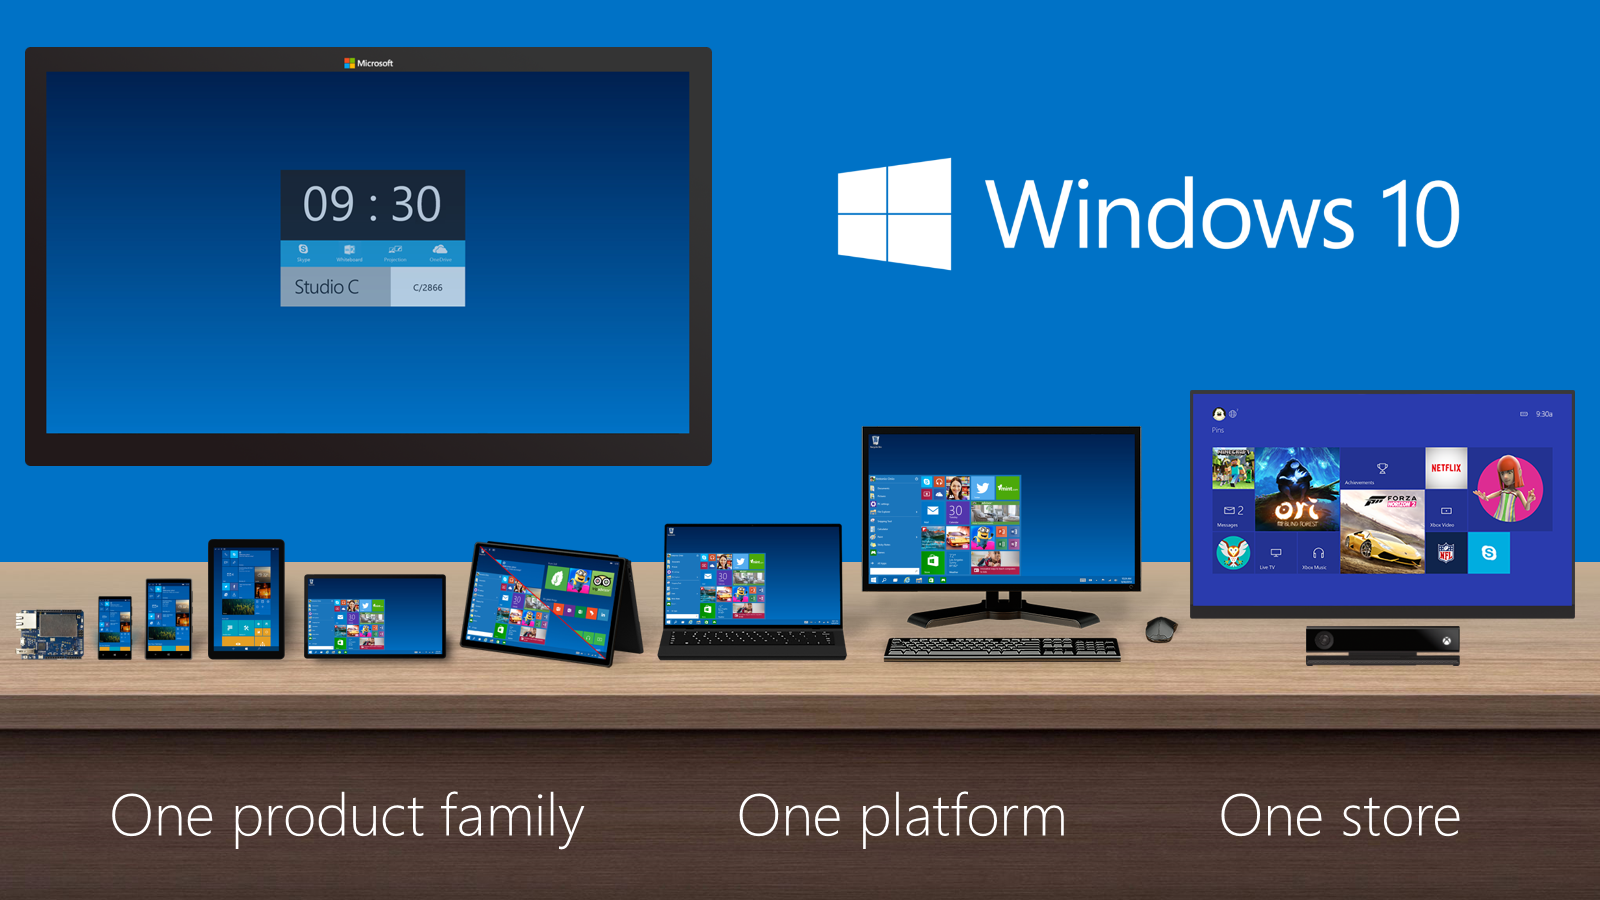 Windows_Product_Family_9-30-Event.png